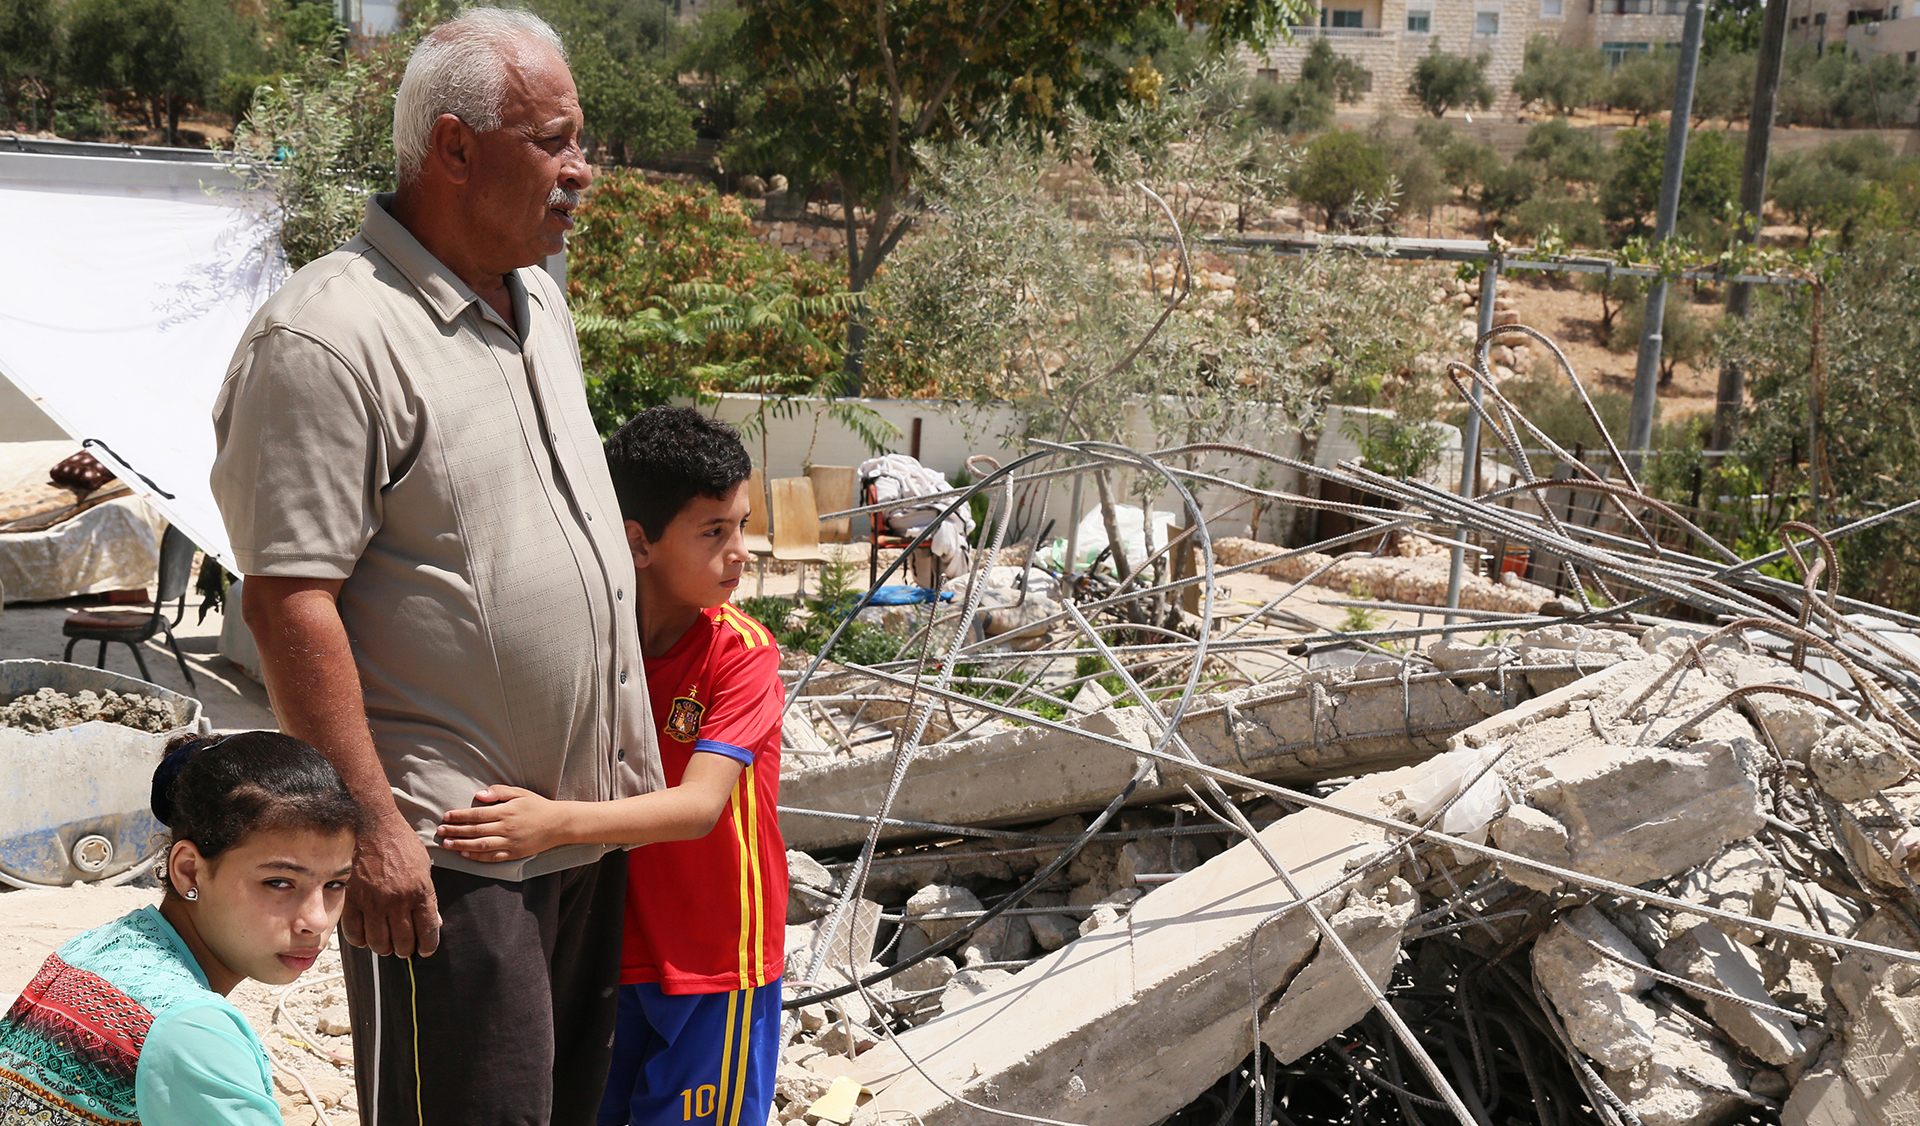 Israeli building laws push father to demolish his children's rooms